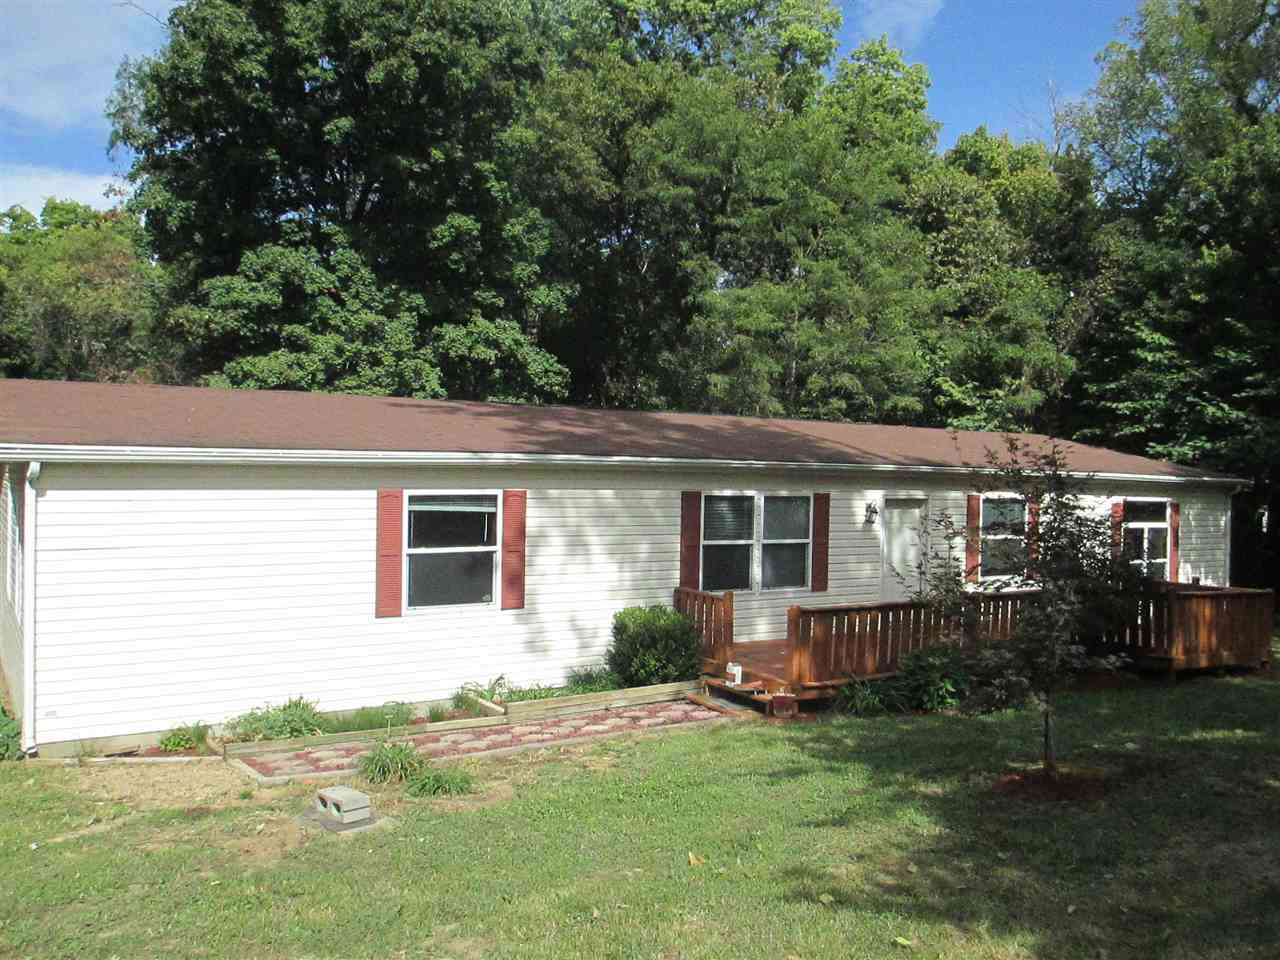 1275 N Old Plank Rd, New Harmony, IN 47631